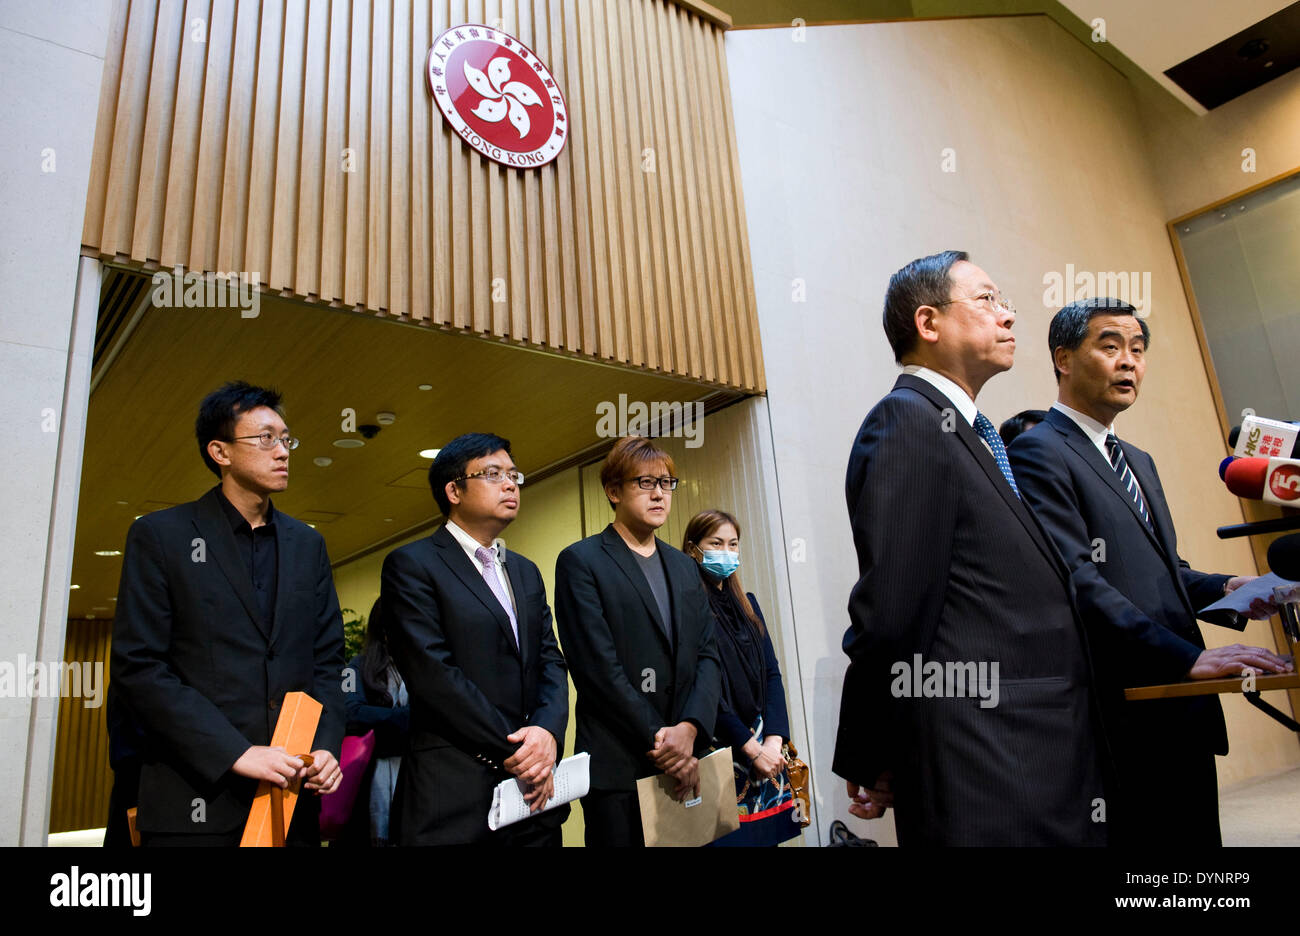 (140423) -- HONG KONG, April 23, 2014 (Xinhua) -- Chief Executive of Hong Kong Special Administrative Region C Y Leung (1st R) attends a press conference in Hong Kong, south China, April 23, 2014. The Philippine government expressed its most sorrowful regret and profound sympathy, and extended its most sincere condolences for the pain and suffering of the victims and their families in the bus hostage crisis that happened in Manila in August 2010, according to a joint statement issued by the government of Hong Kong Special Administrative Region and the Philippine government here on Wednesday. - Stock Image